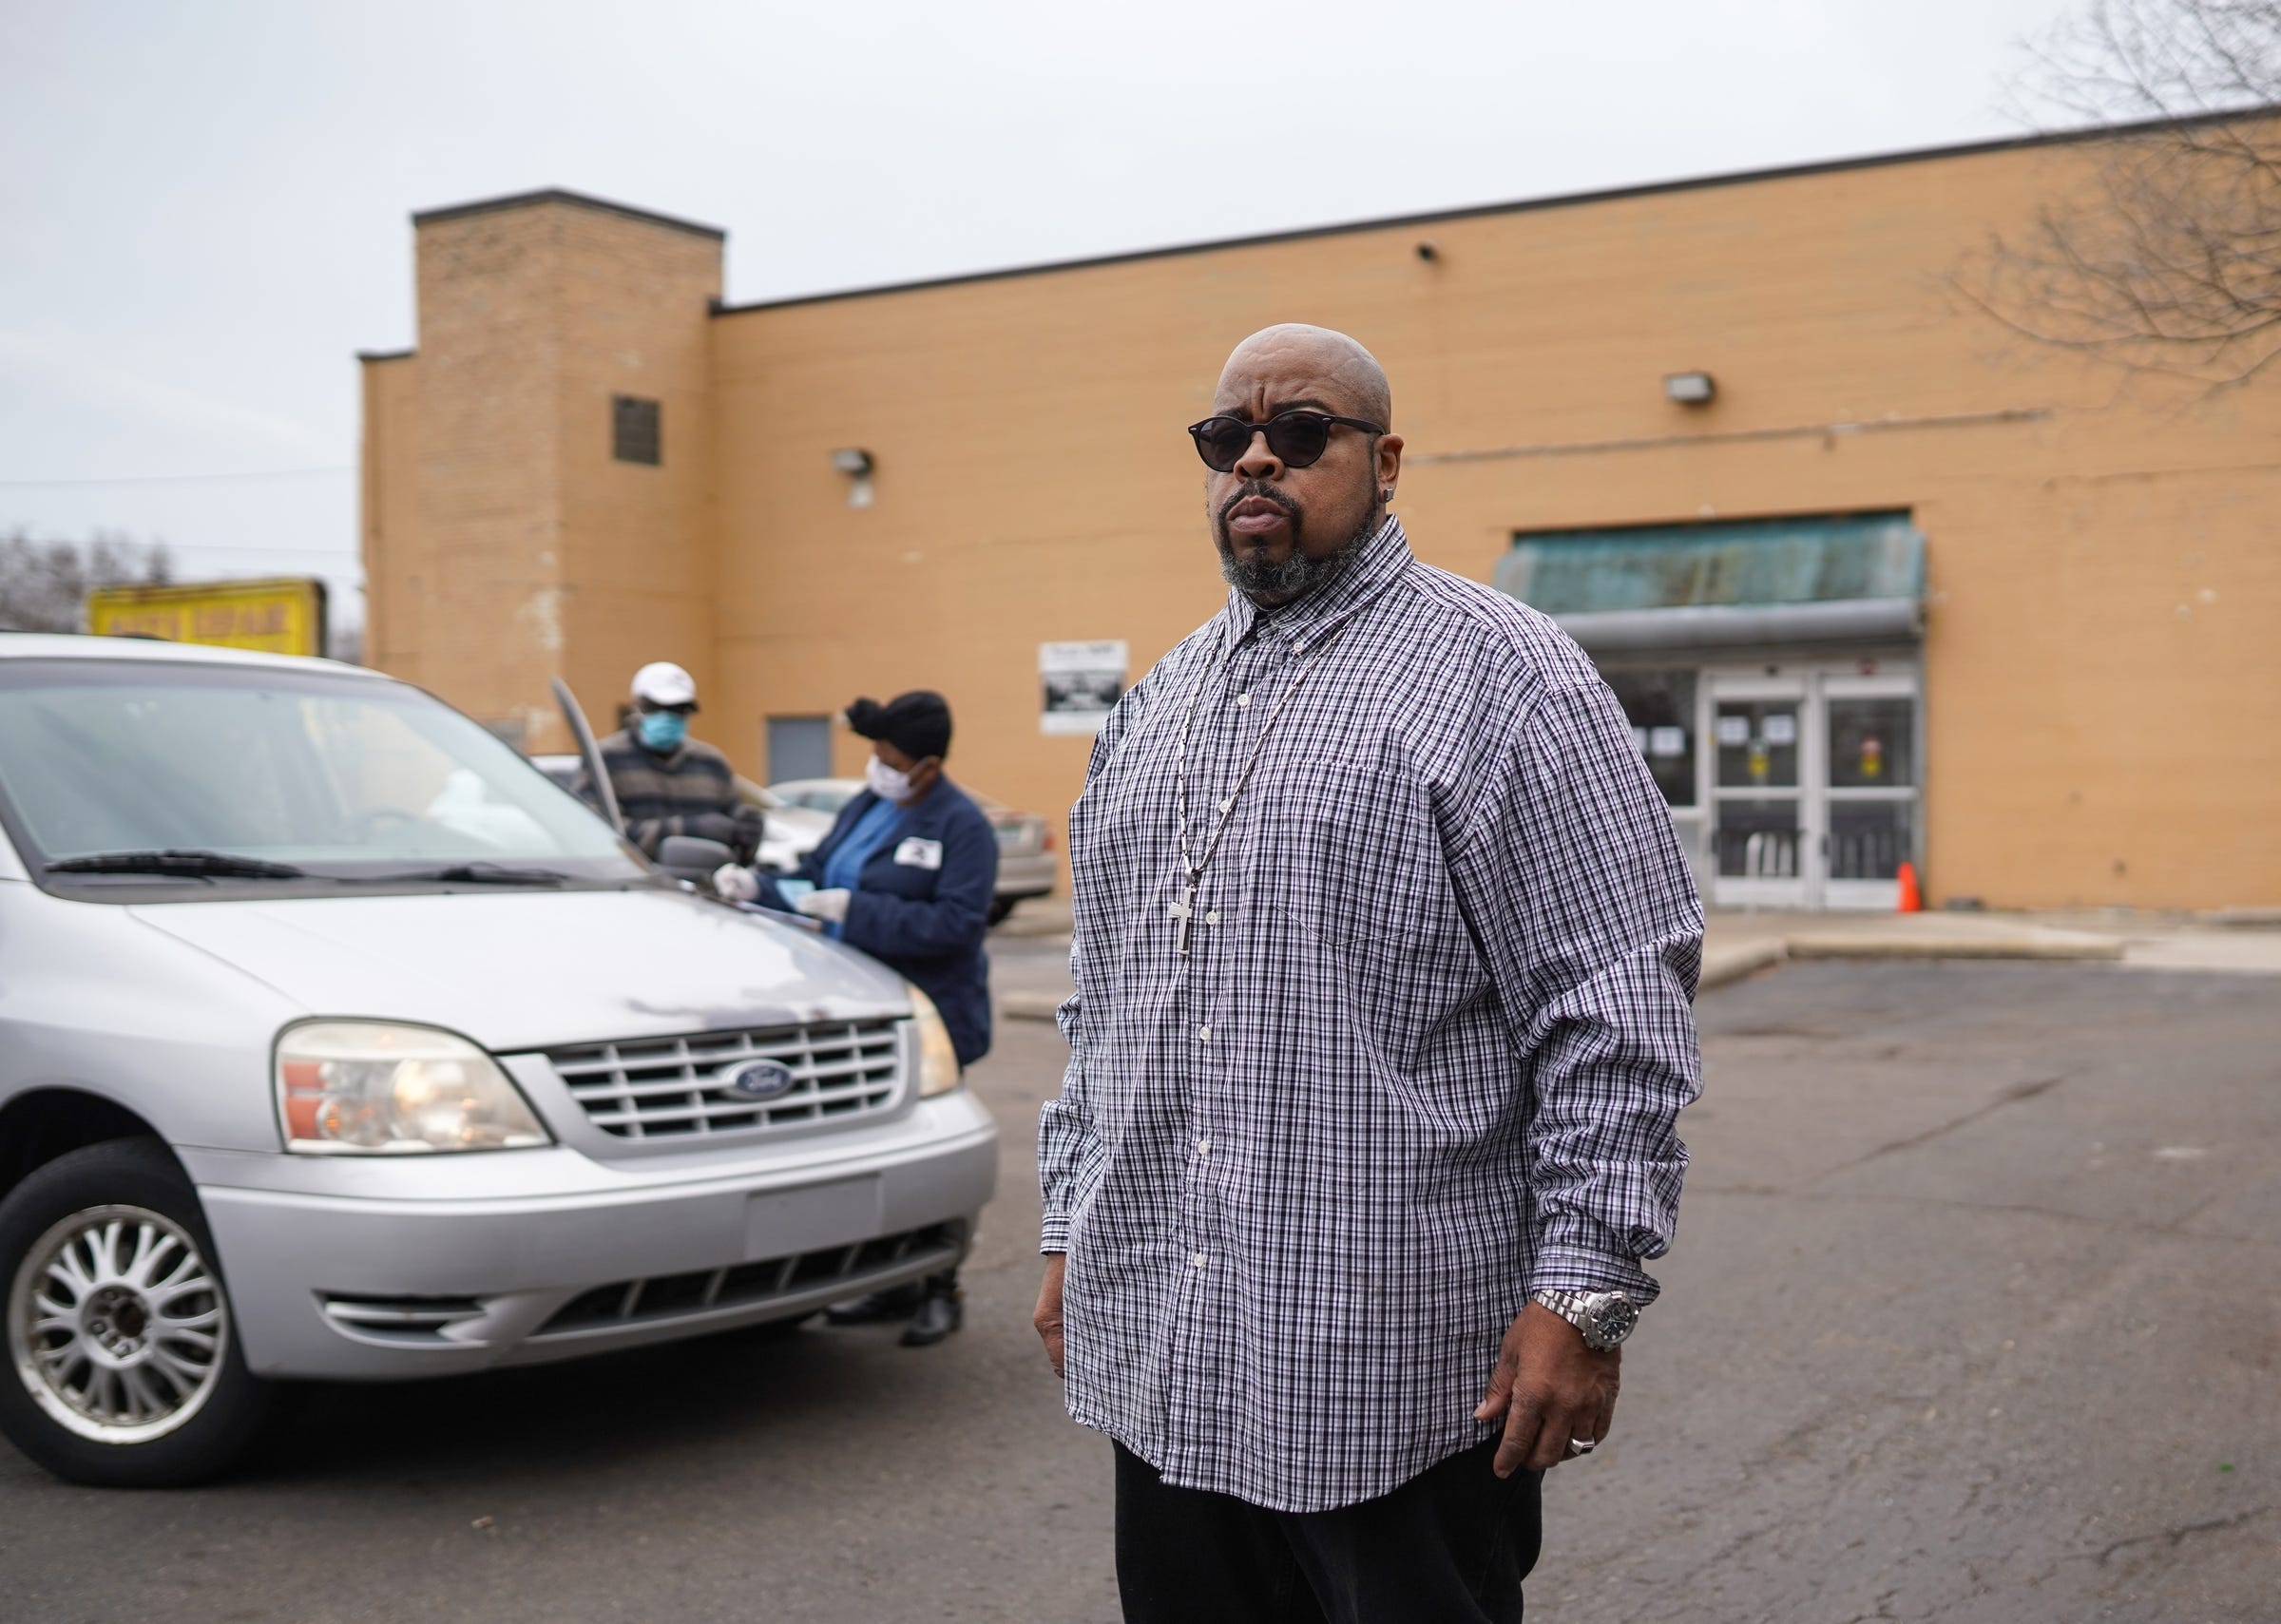 Focus : HOPE Eastside manager Tommie Felton stands outside as community members stop by to pick up food during a food pantry at the organization on Thursday, March 26, 2020 on Detroit's east side.